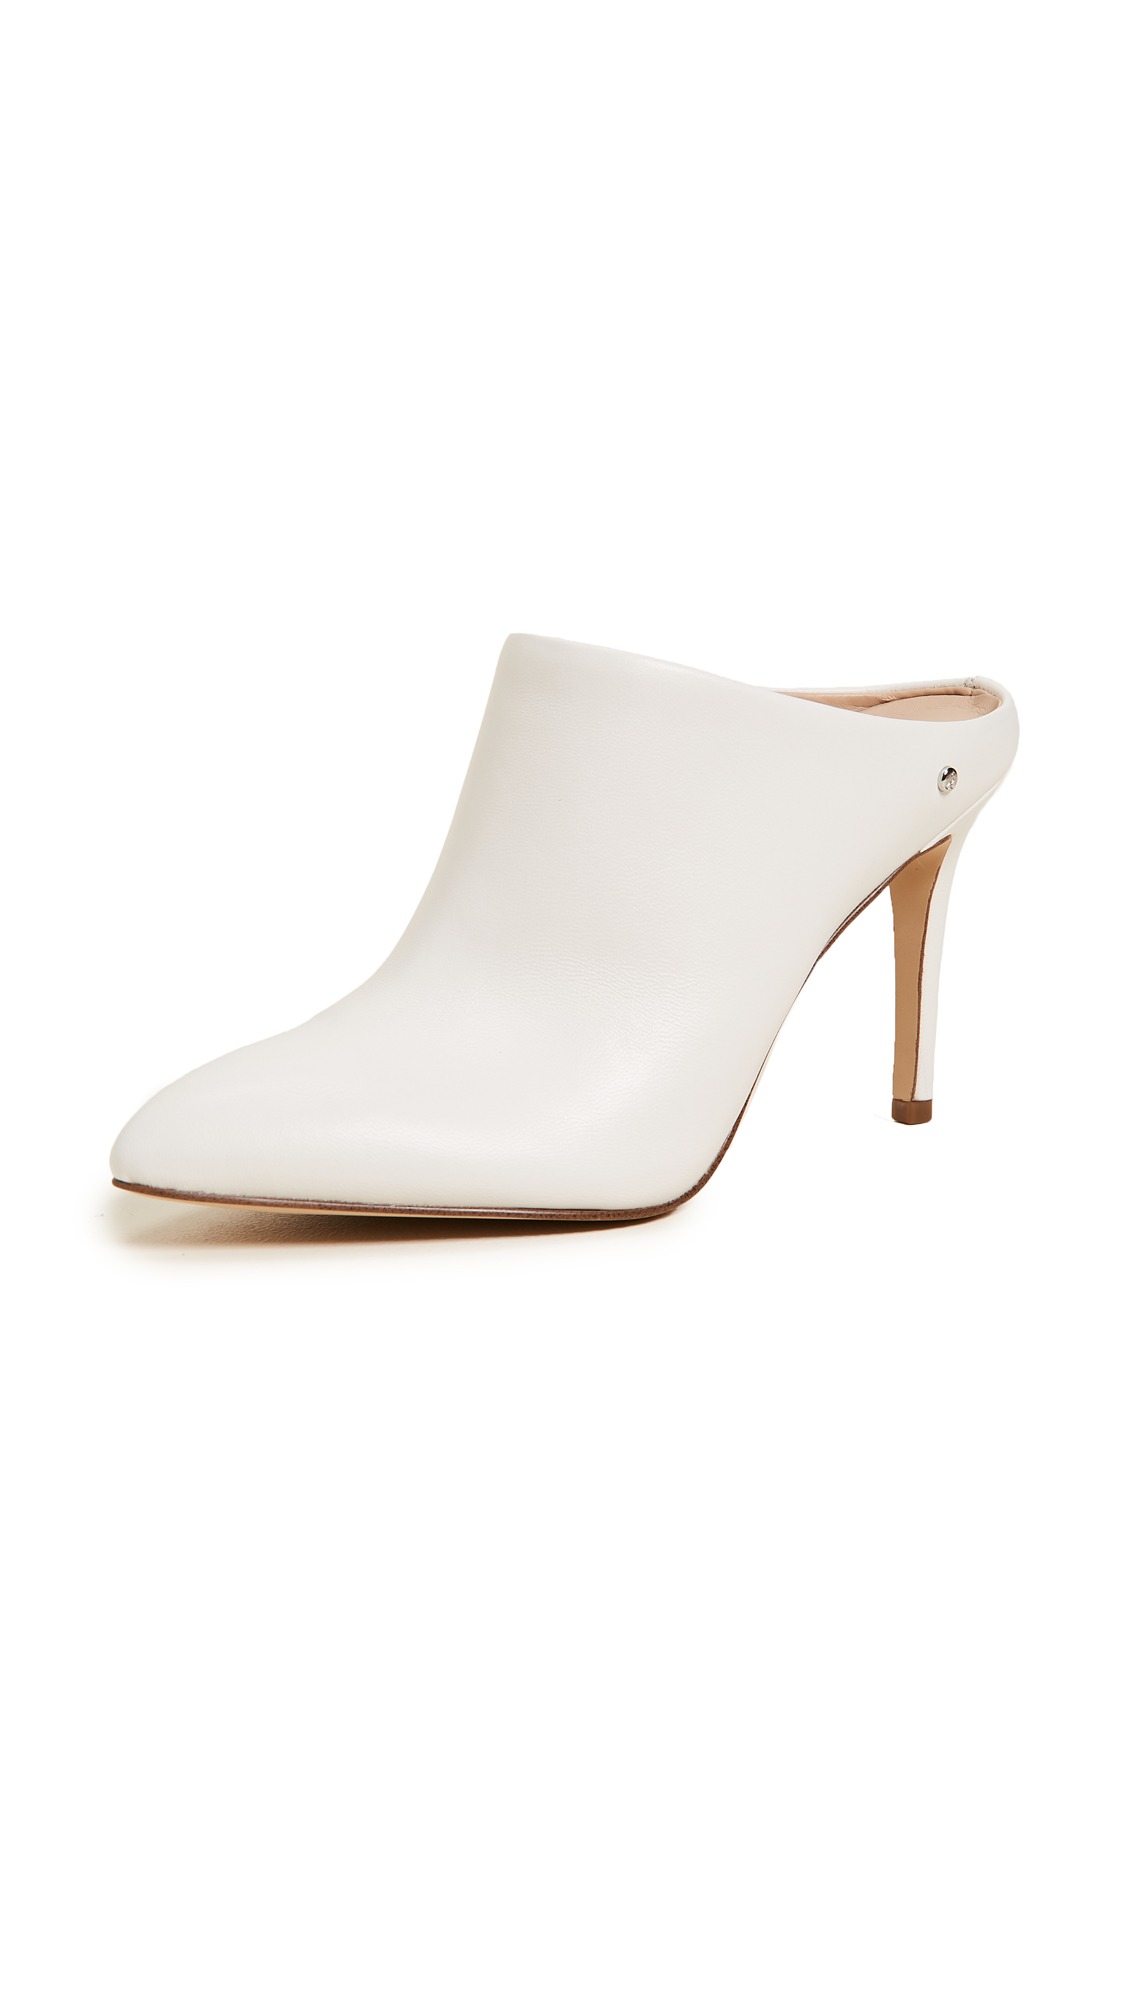 Sam Edelman Oran Mules - Bright White